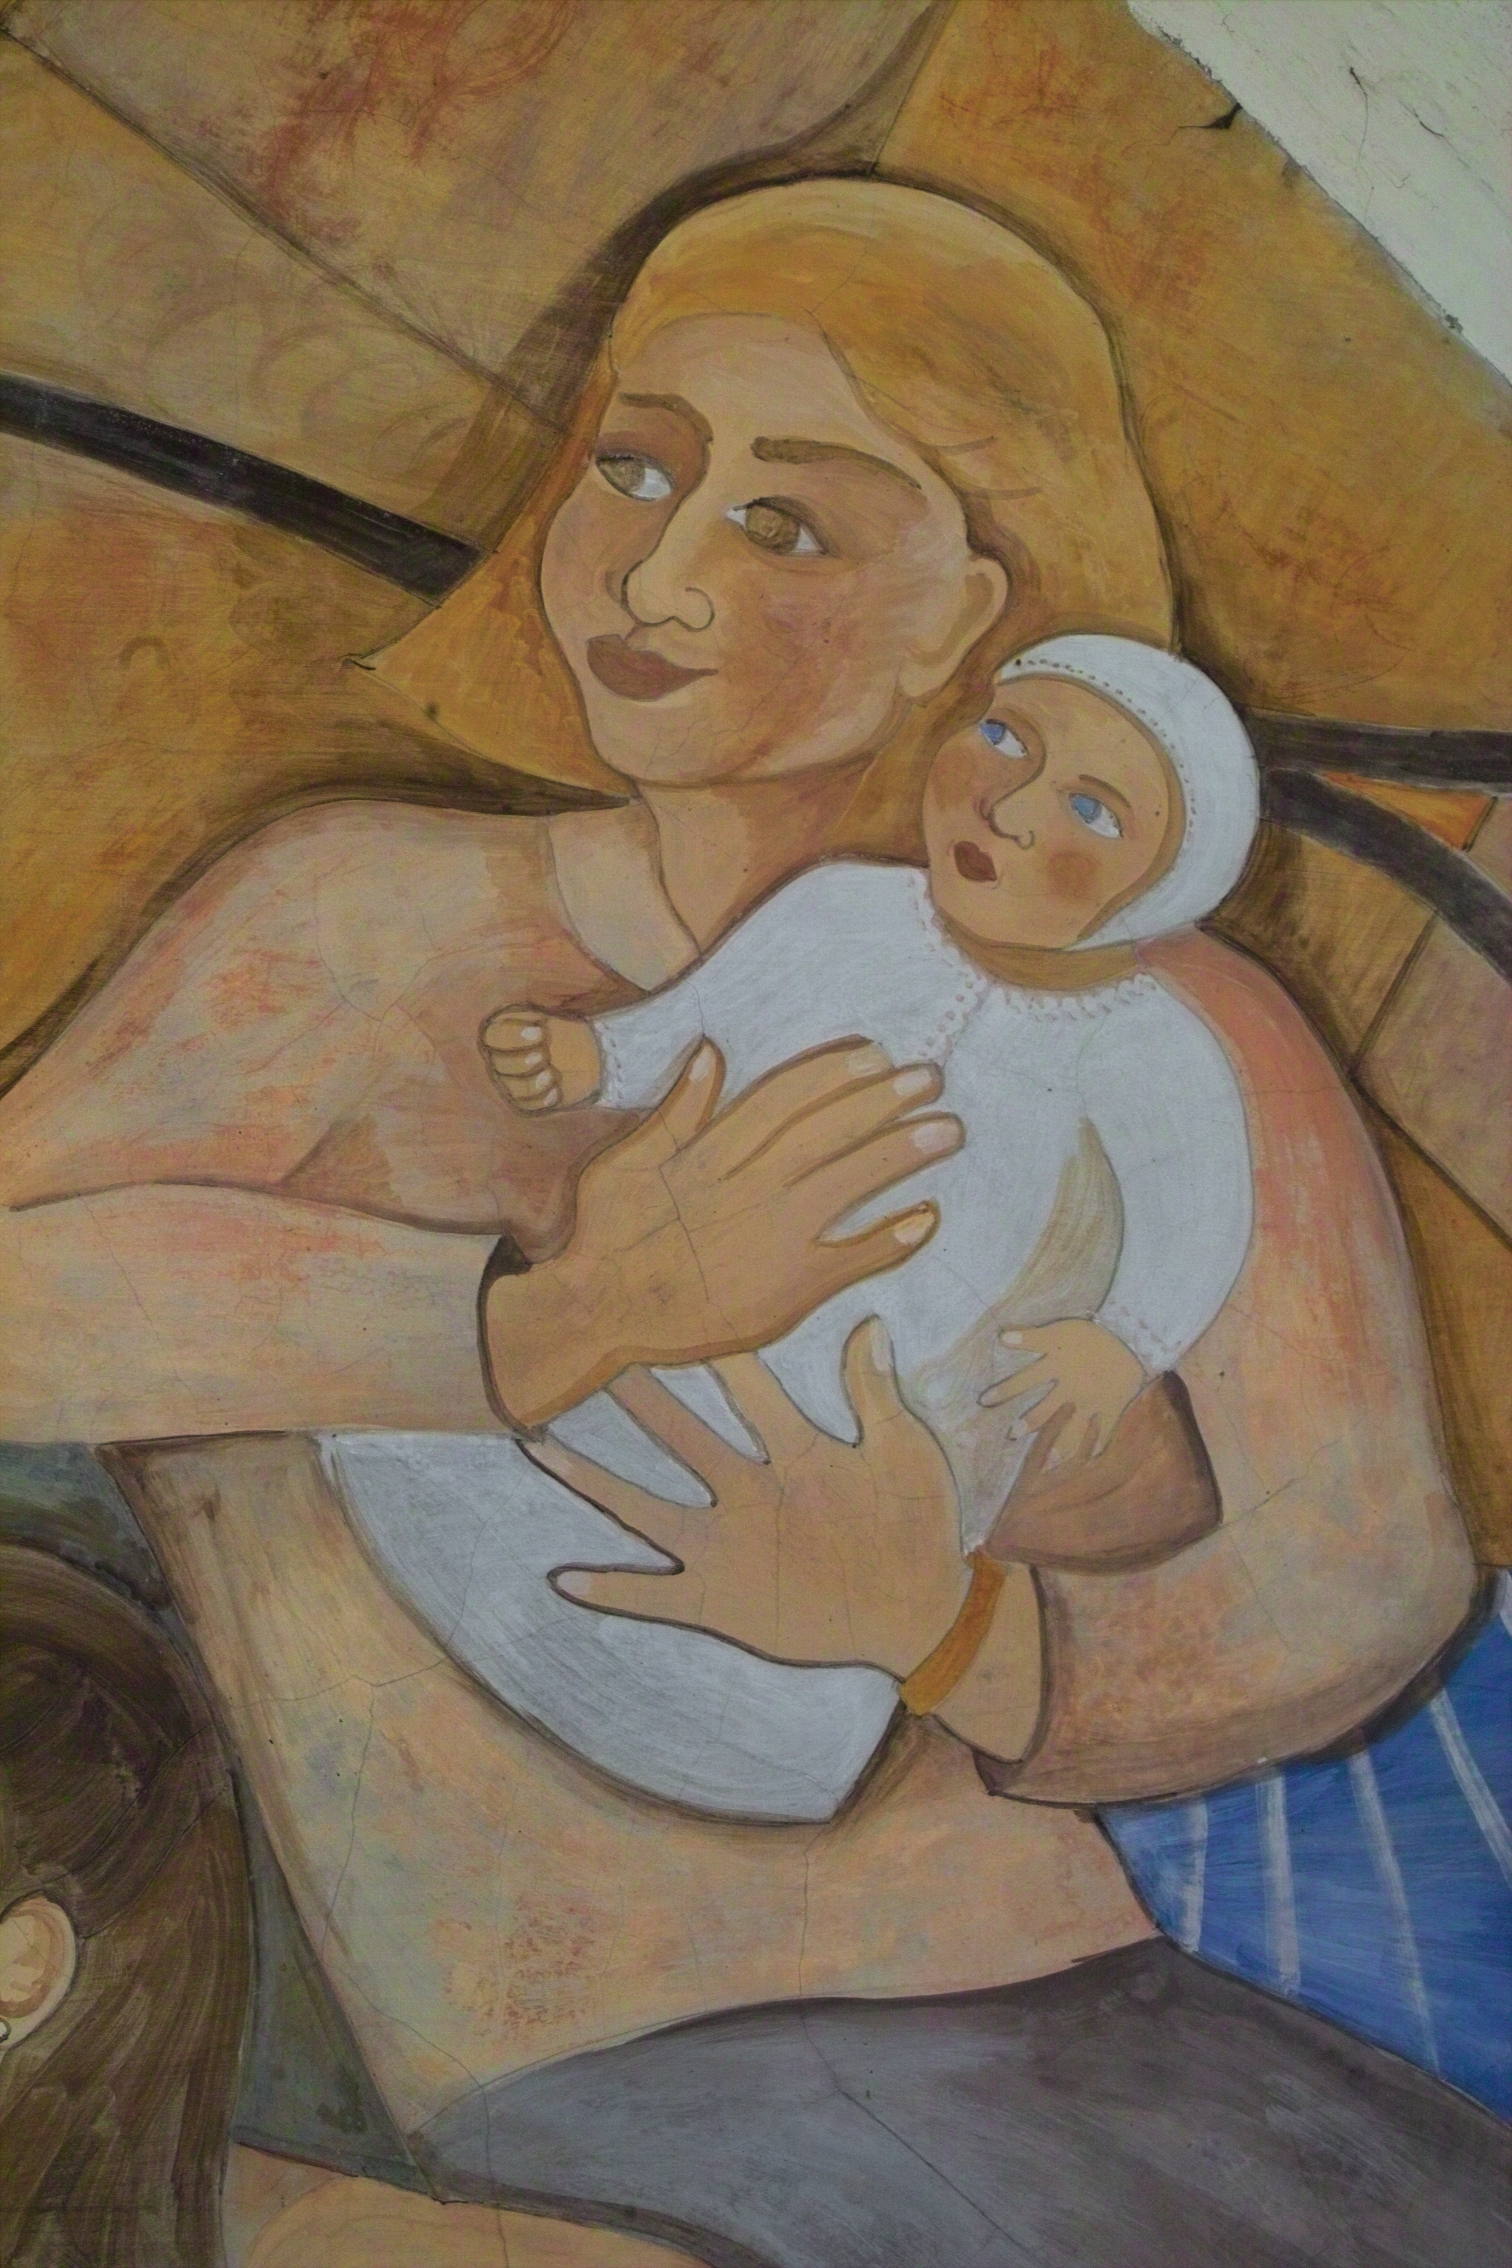 """Mimma and Sofia"", detail, fresco on stone wall,​ 1996"